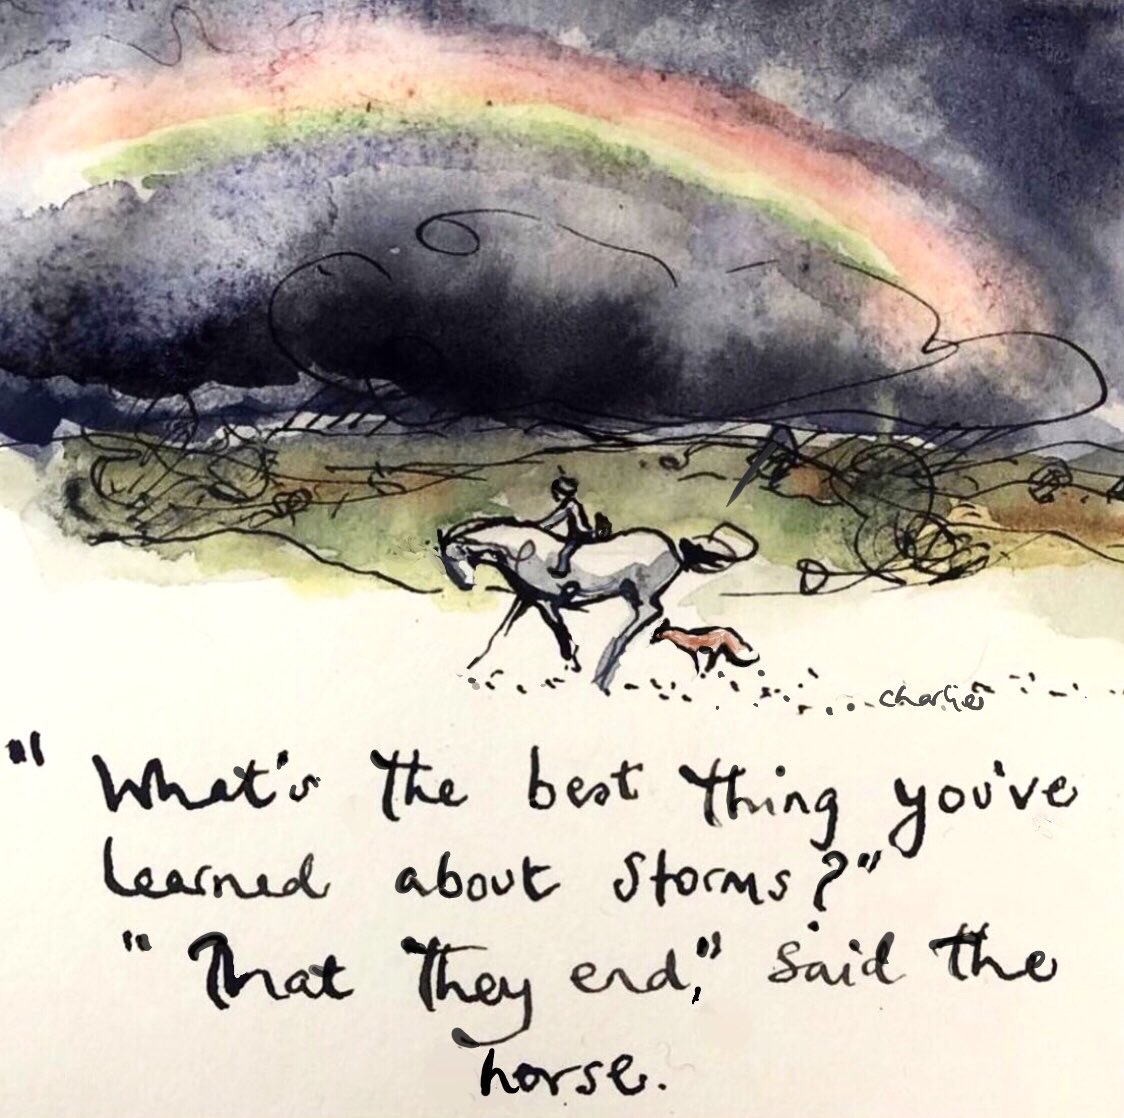 what is the best thing you have learned about storms